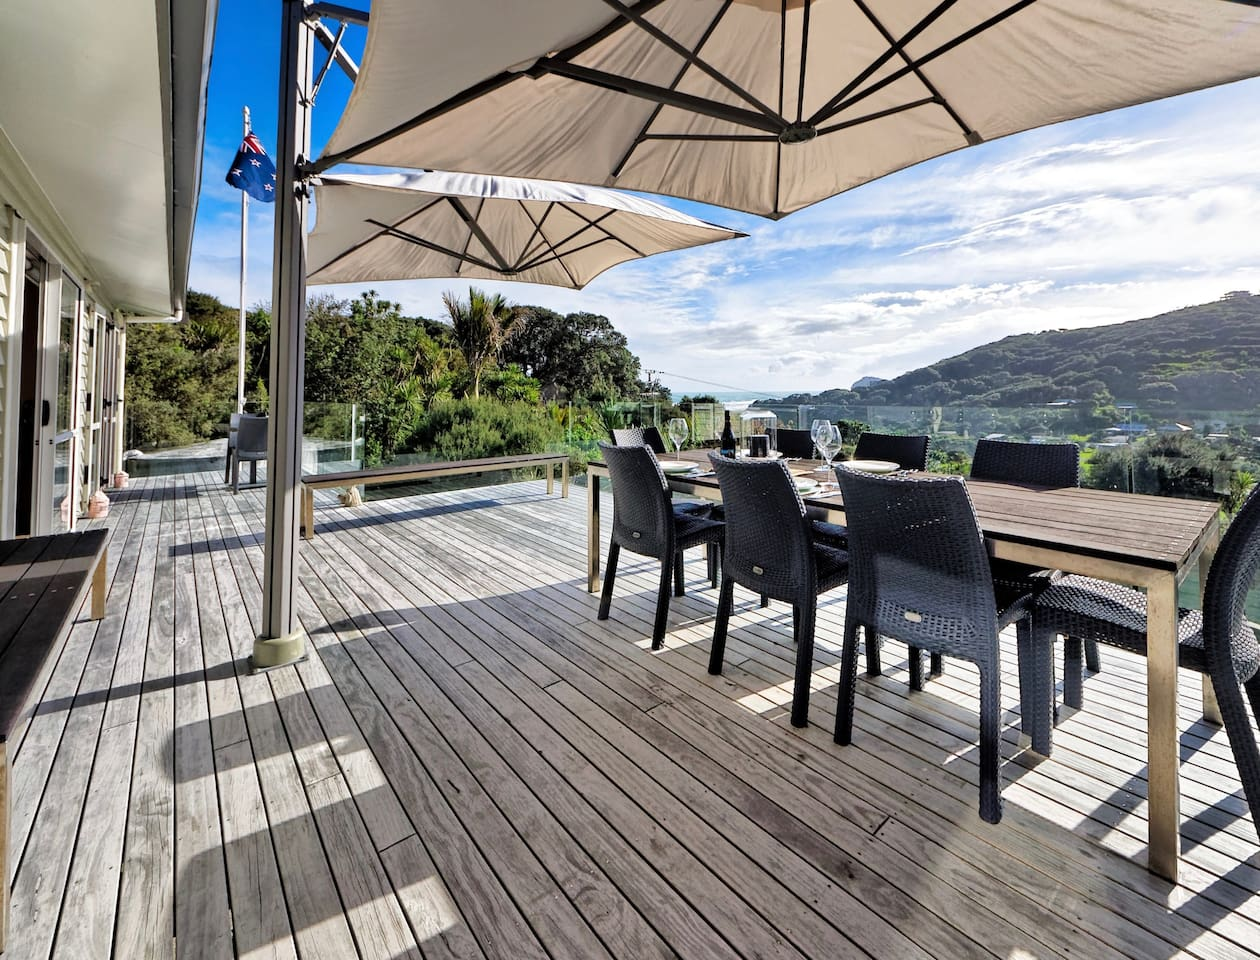 Explore Piha - Piha Holiday Home - Outdoor living and dining on the deck!